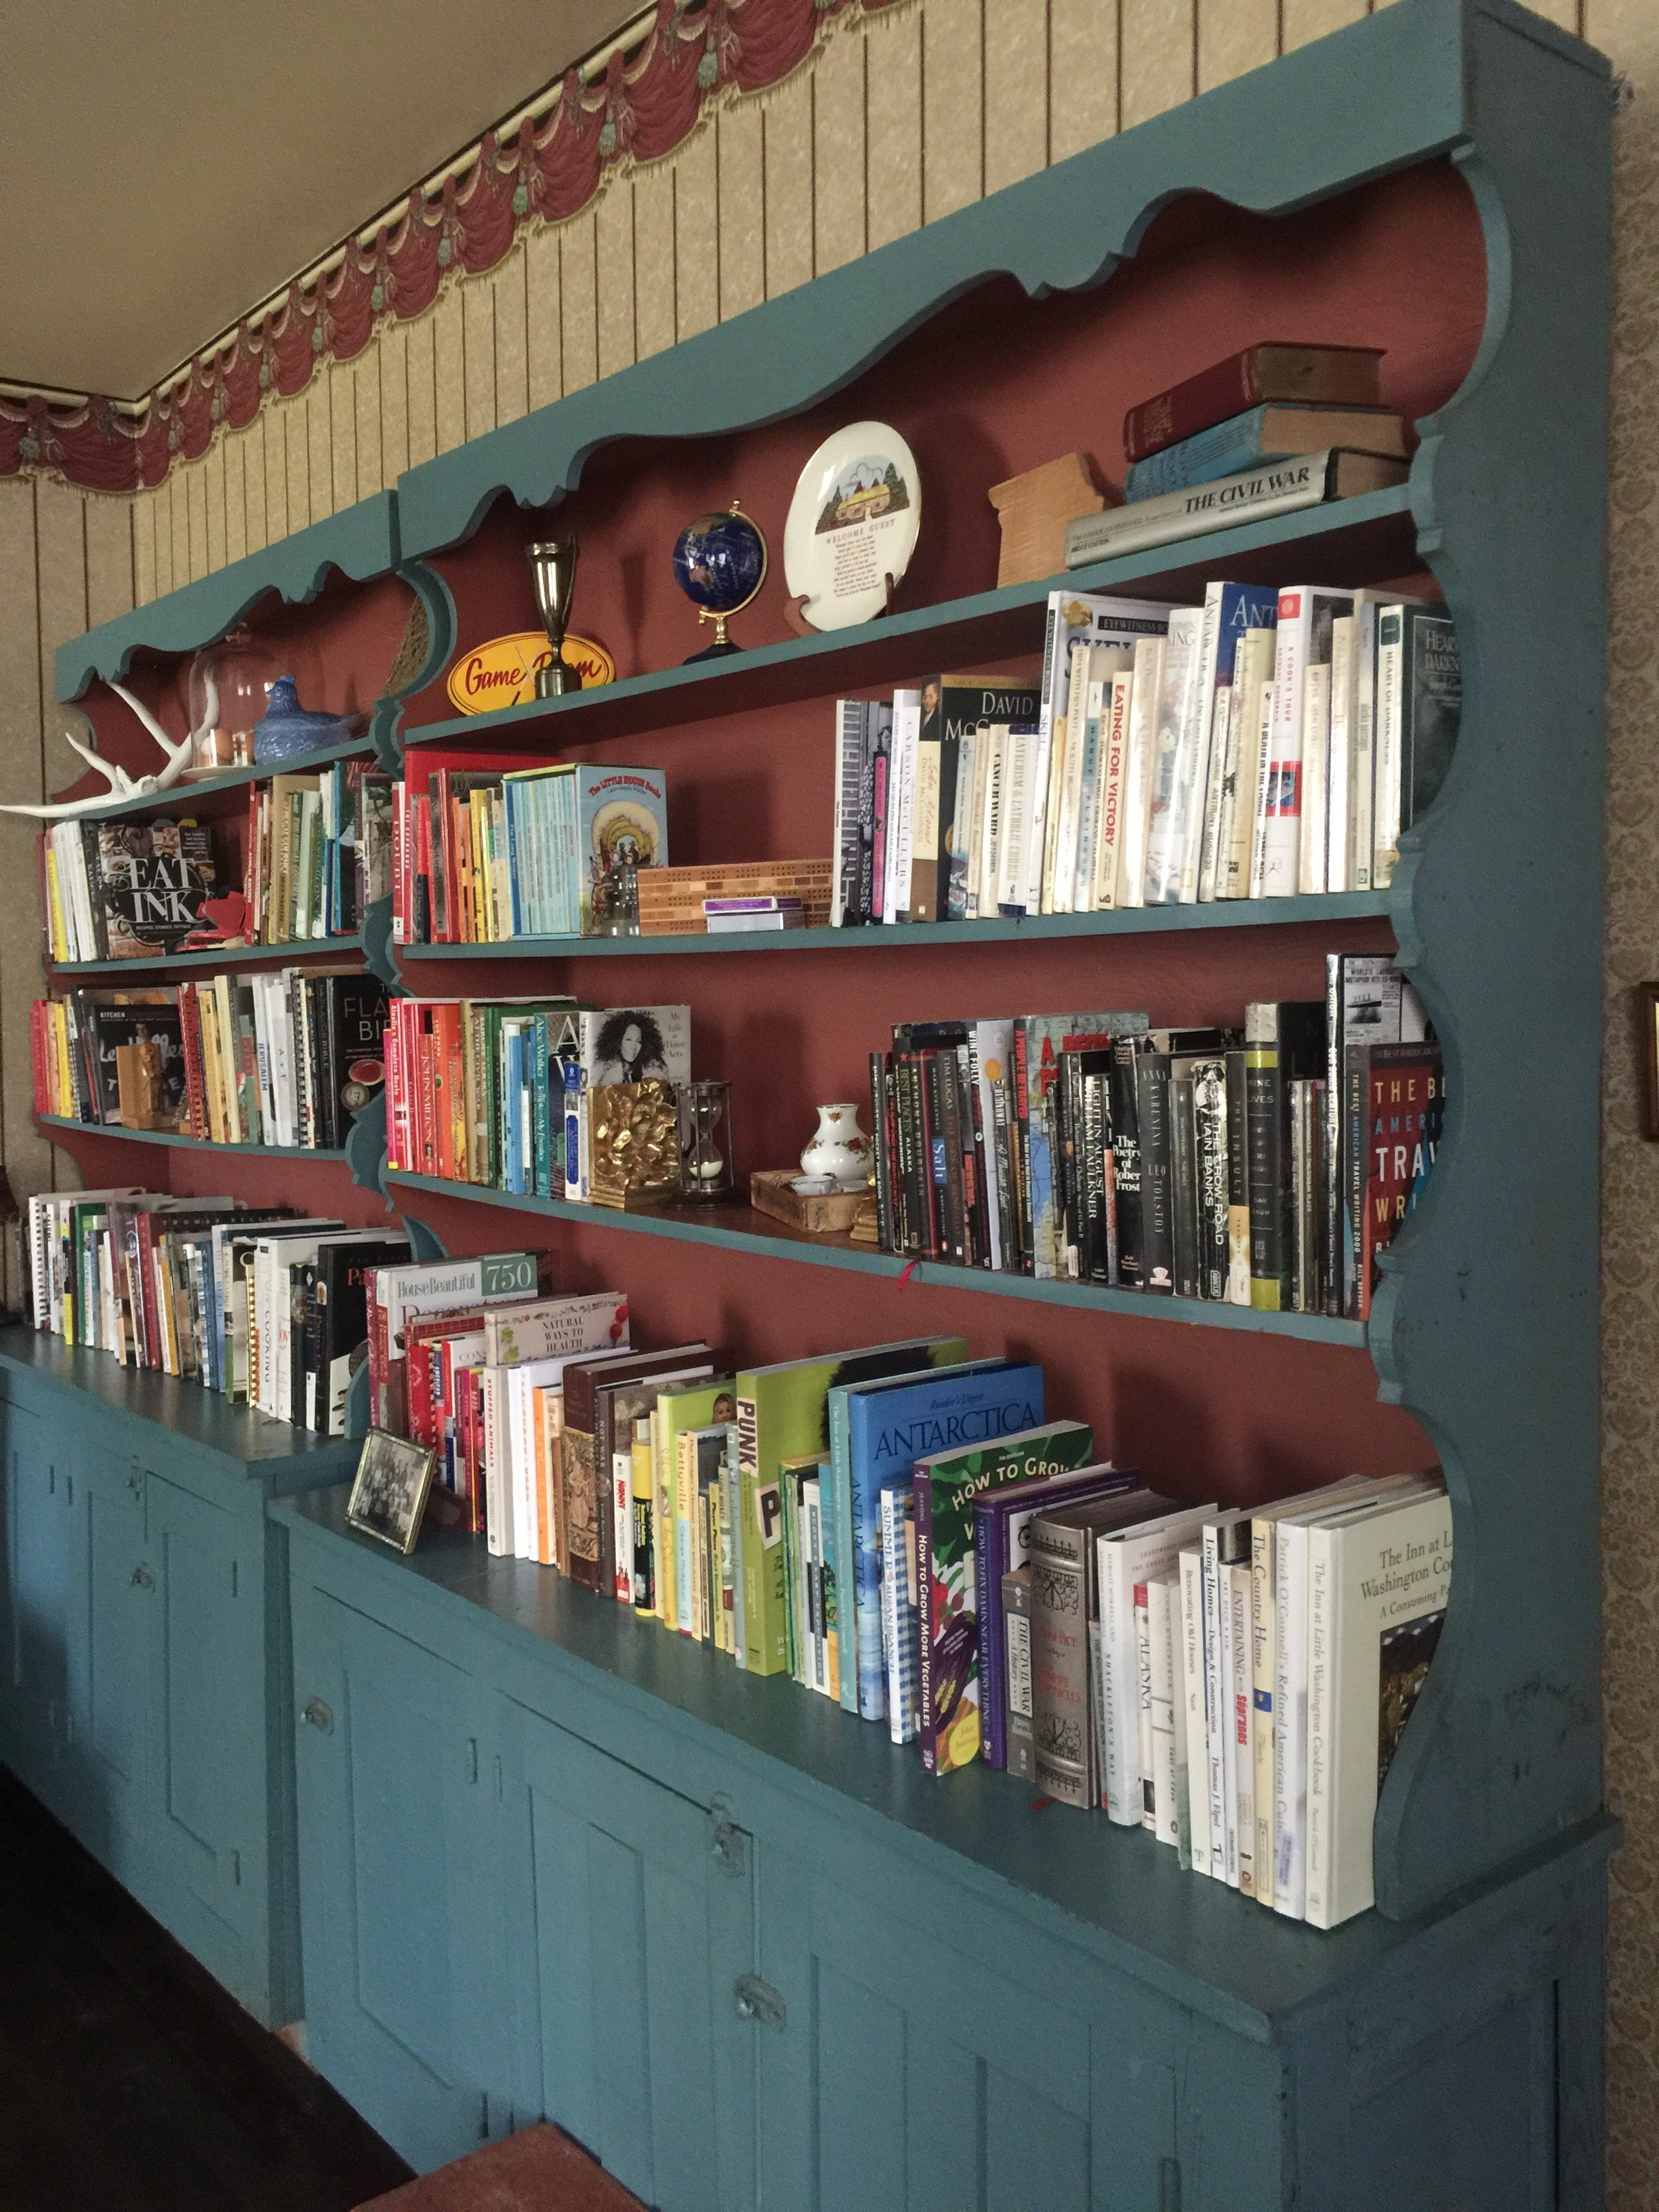 The former display cases from Chanticleer, now our Library's bookshelves.